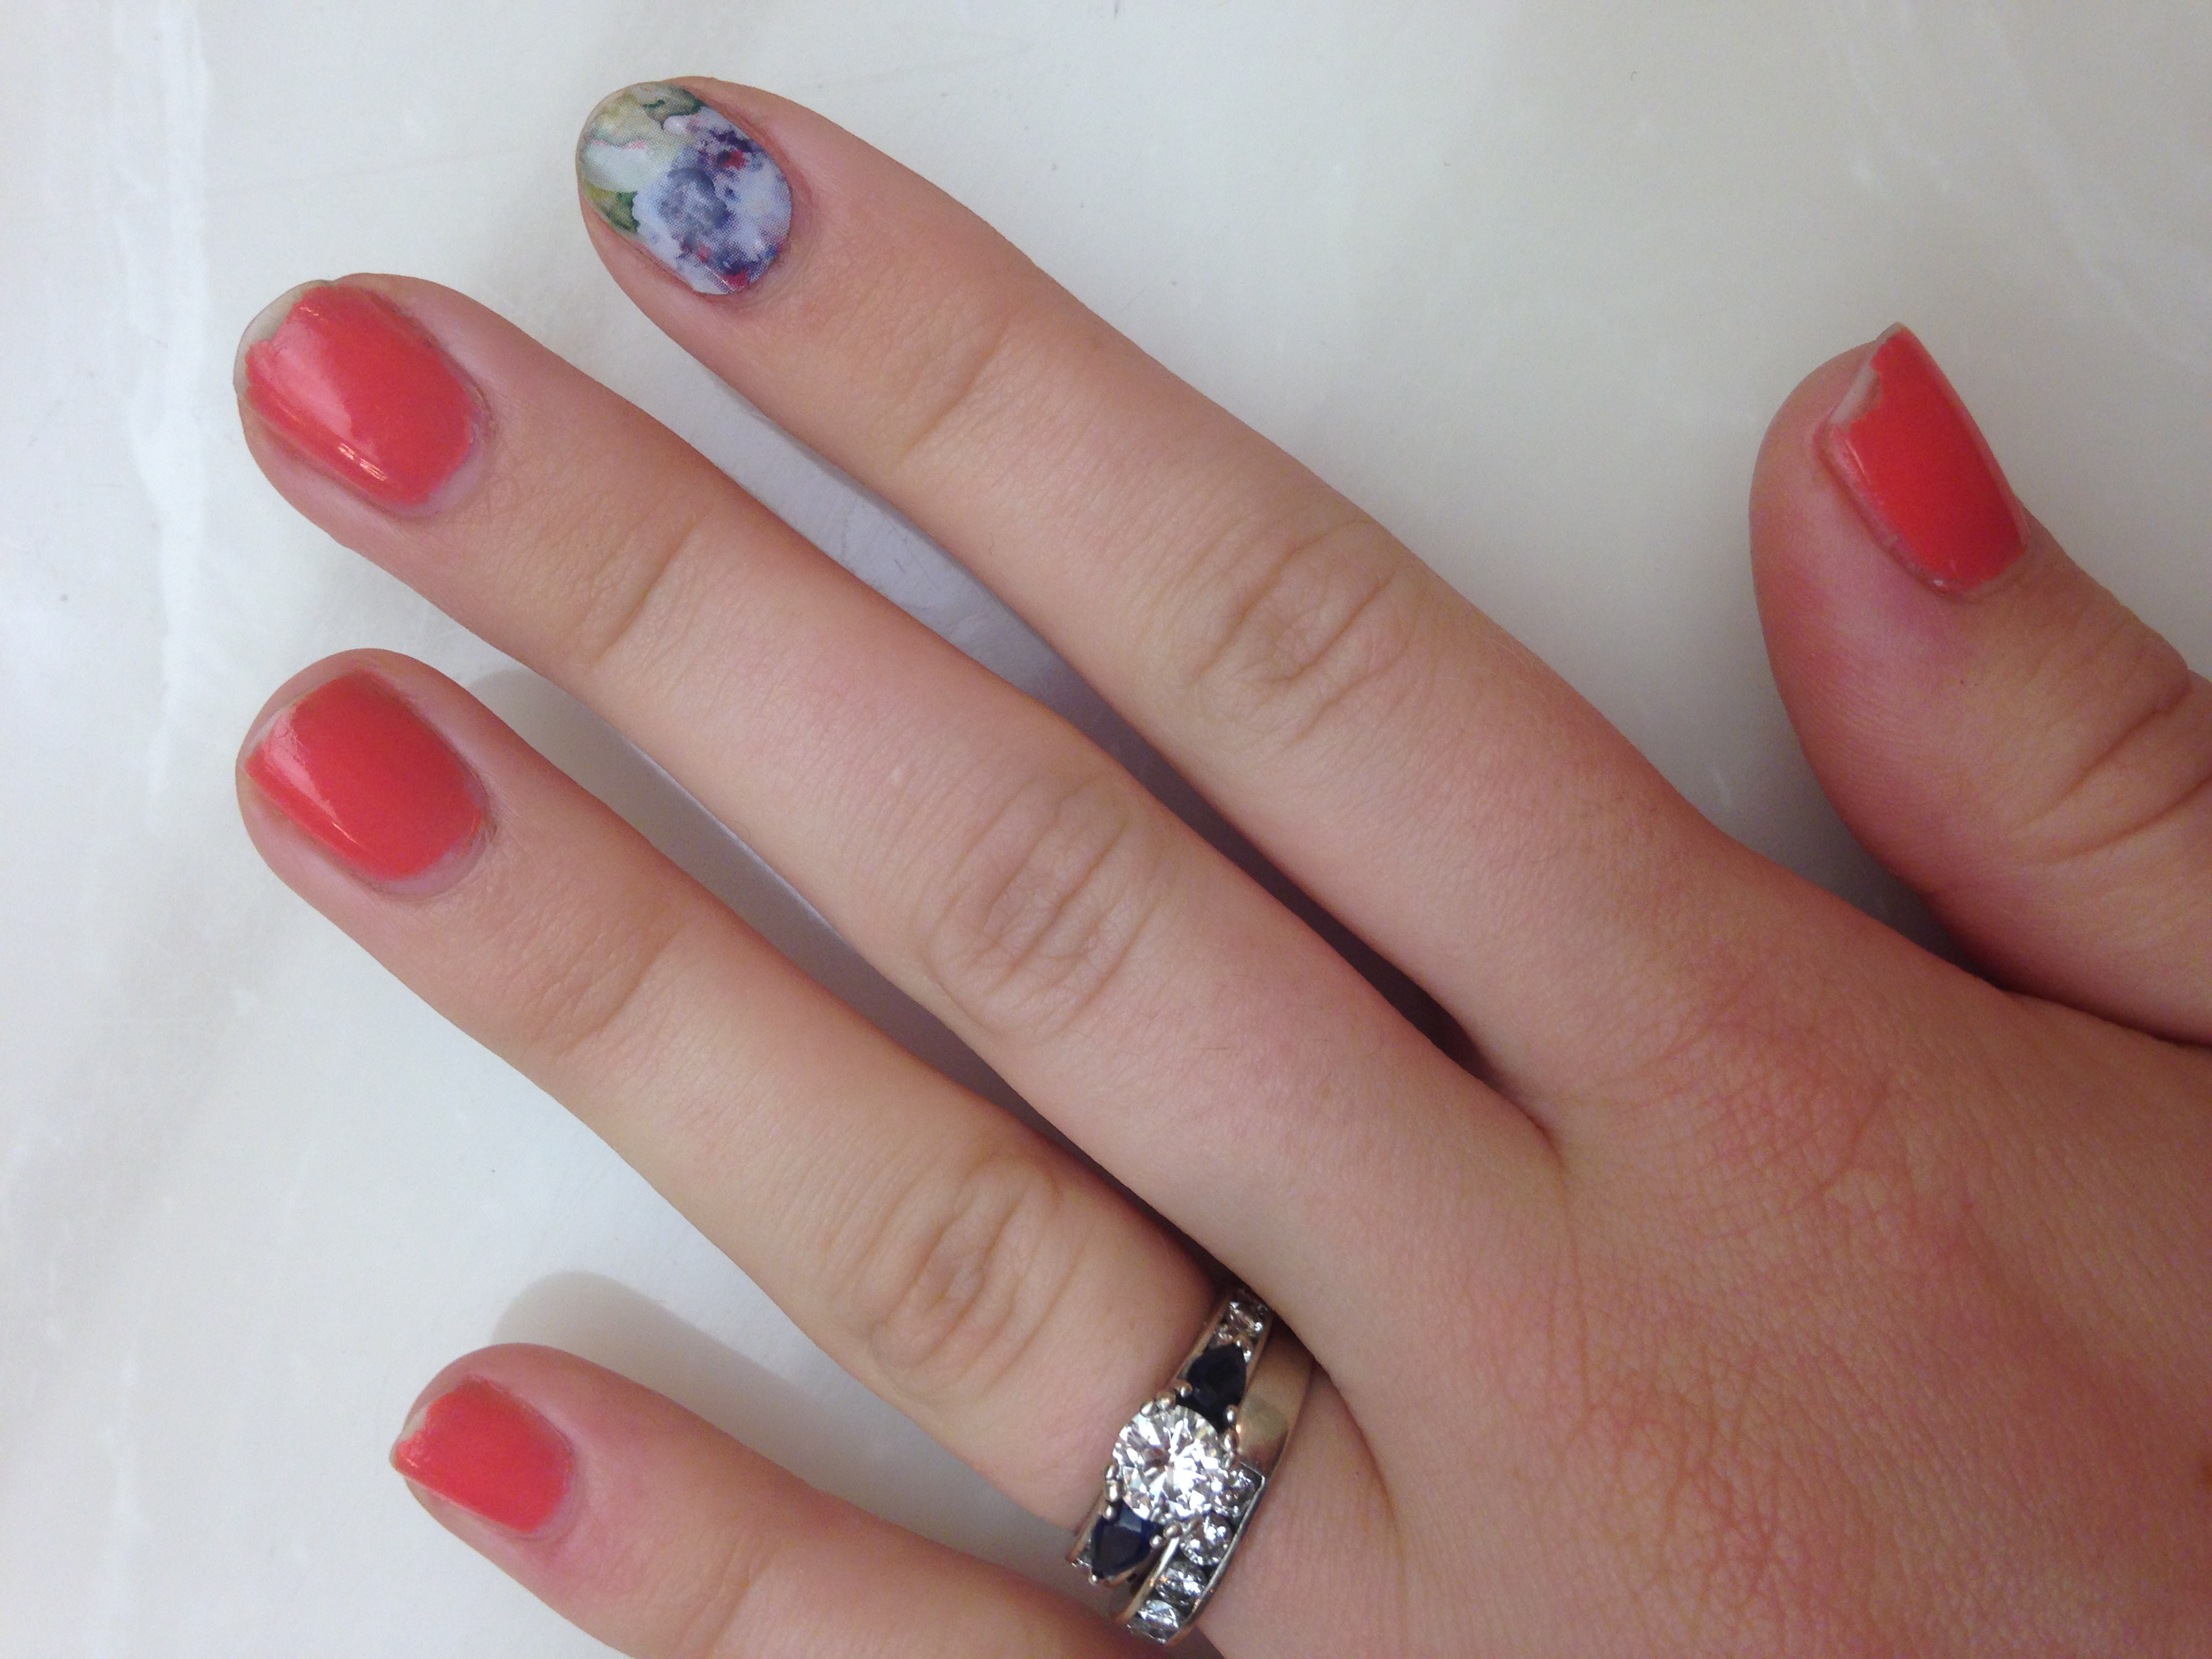 Day 7 Jamberry Test